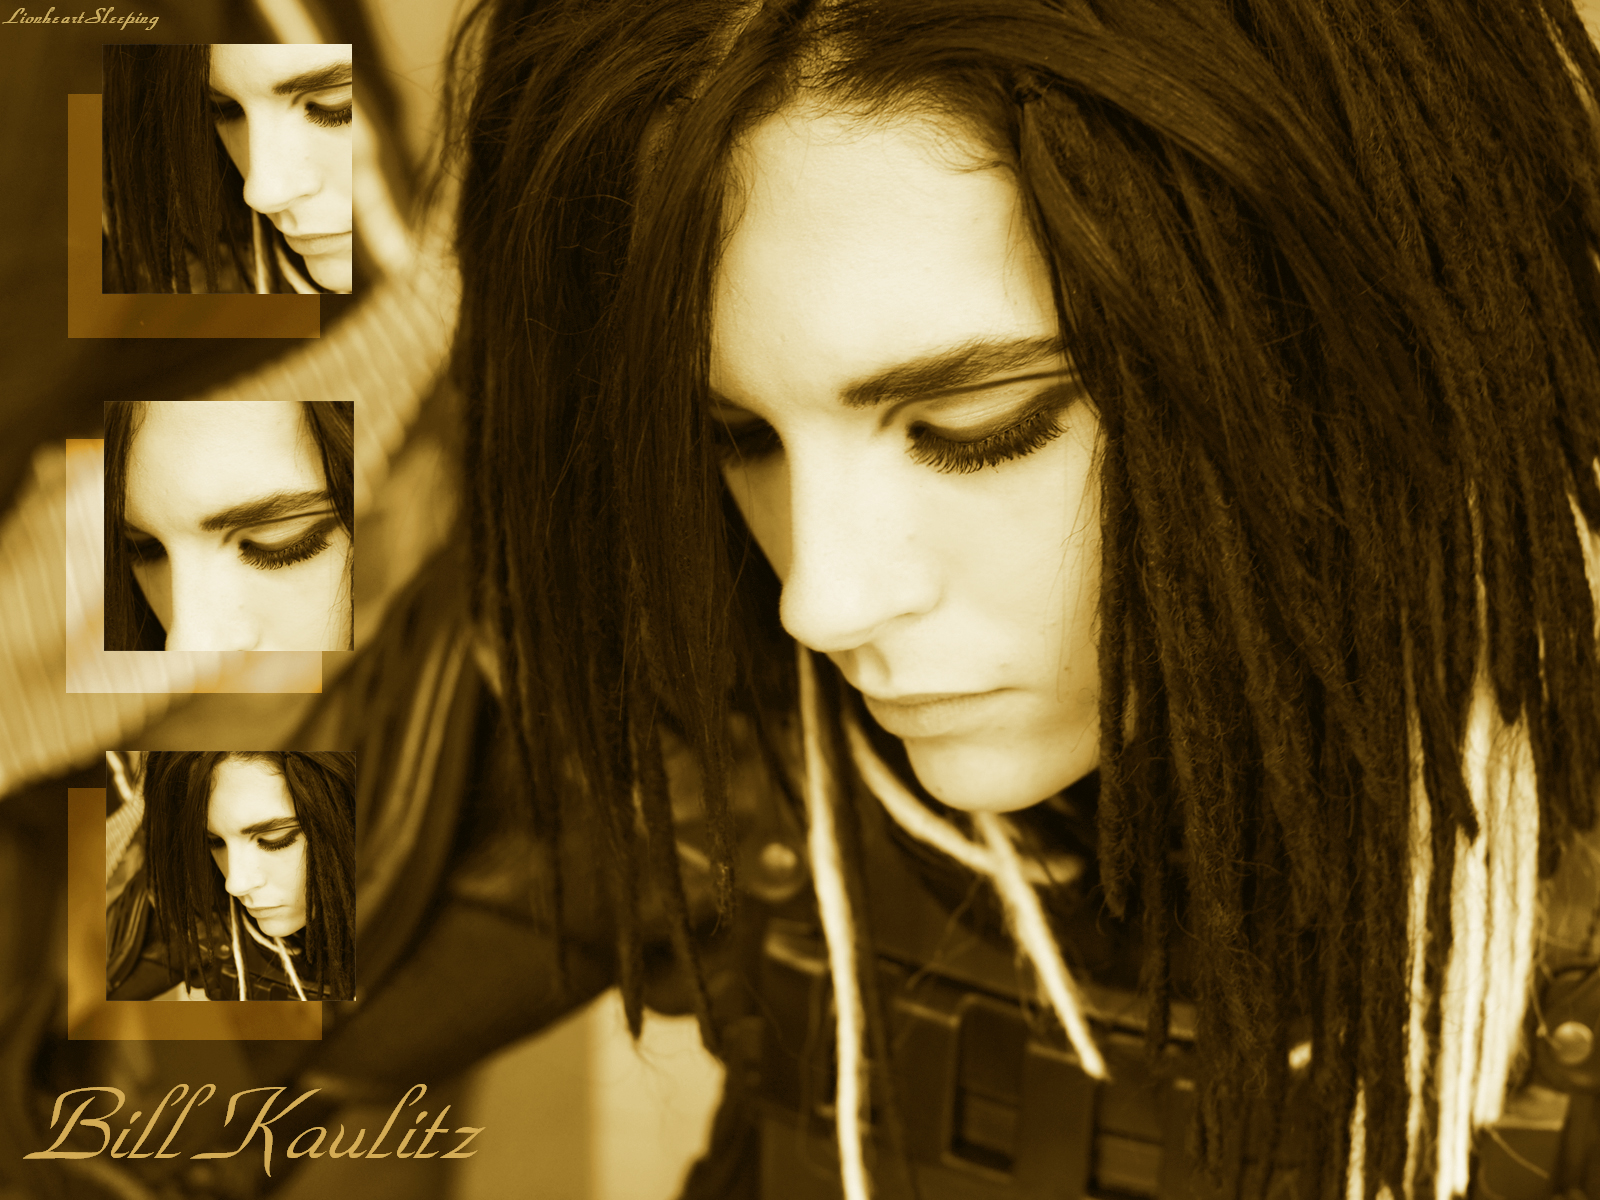 Bill Kaulitz Wallpaper by ~LionheartSleeping on deviantART